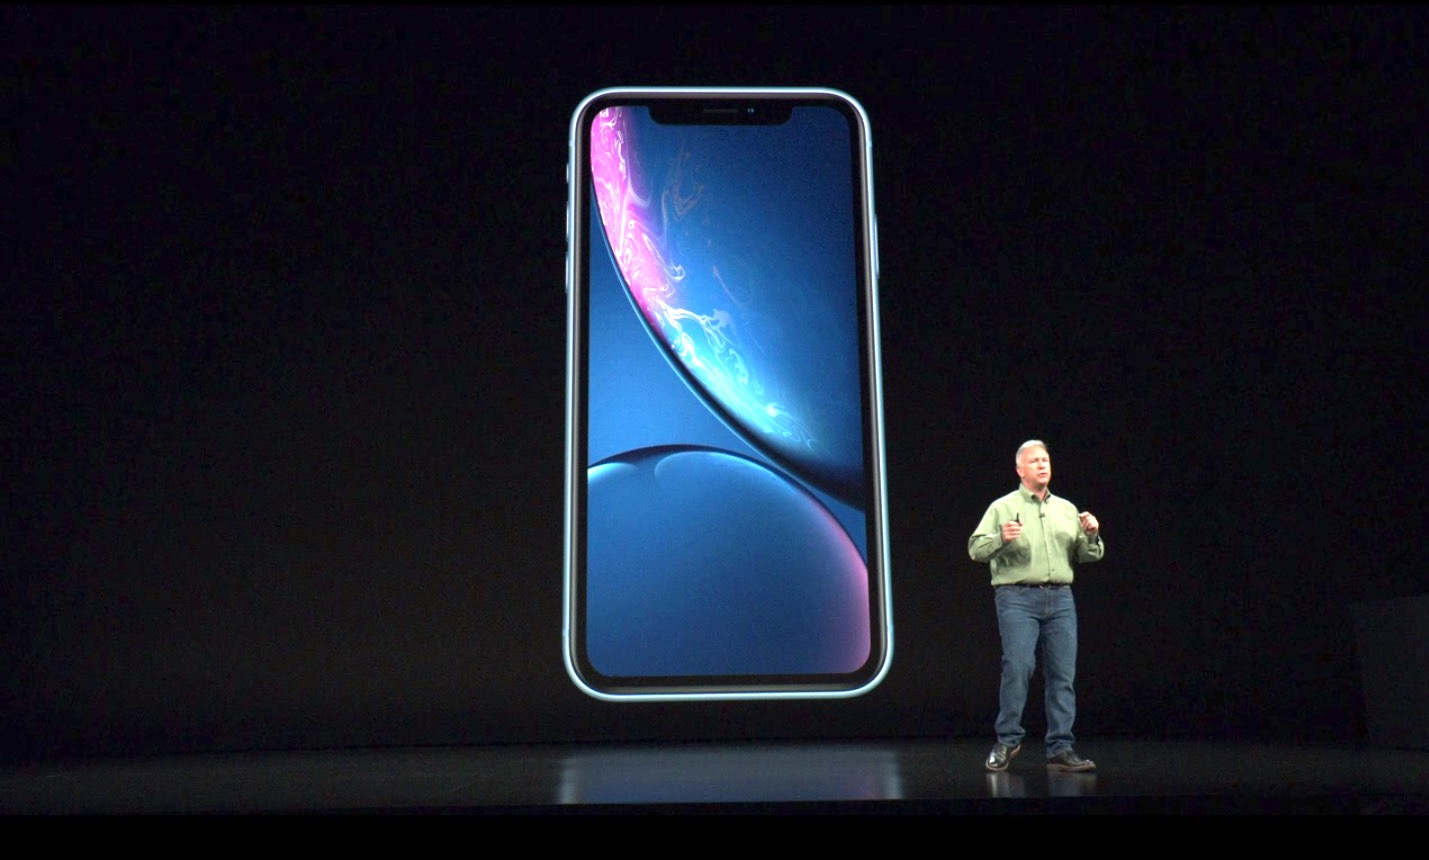 La production de l'iPhone XR toujours difficile : Apple réorganise ses commandes 1